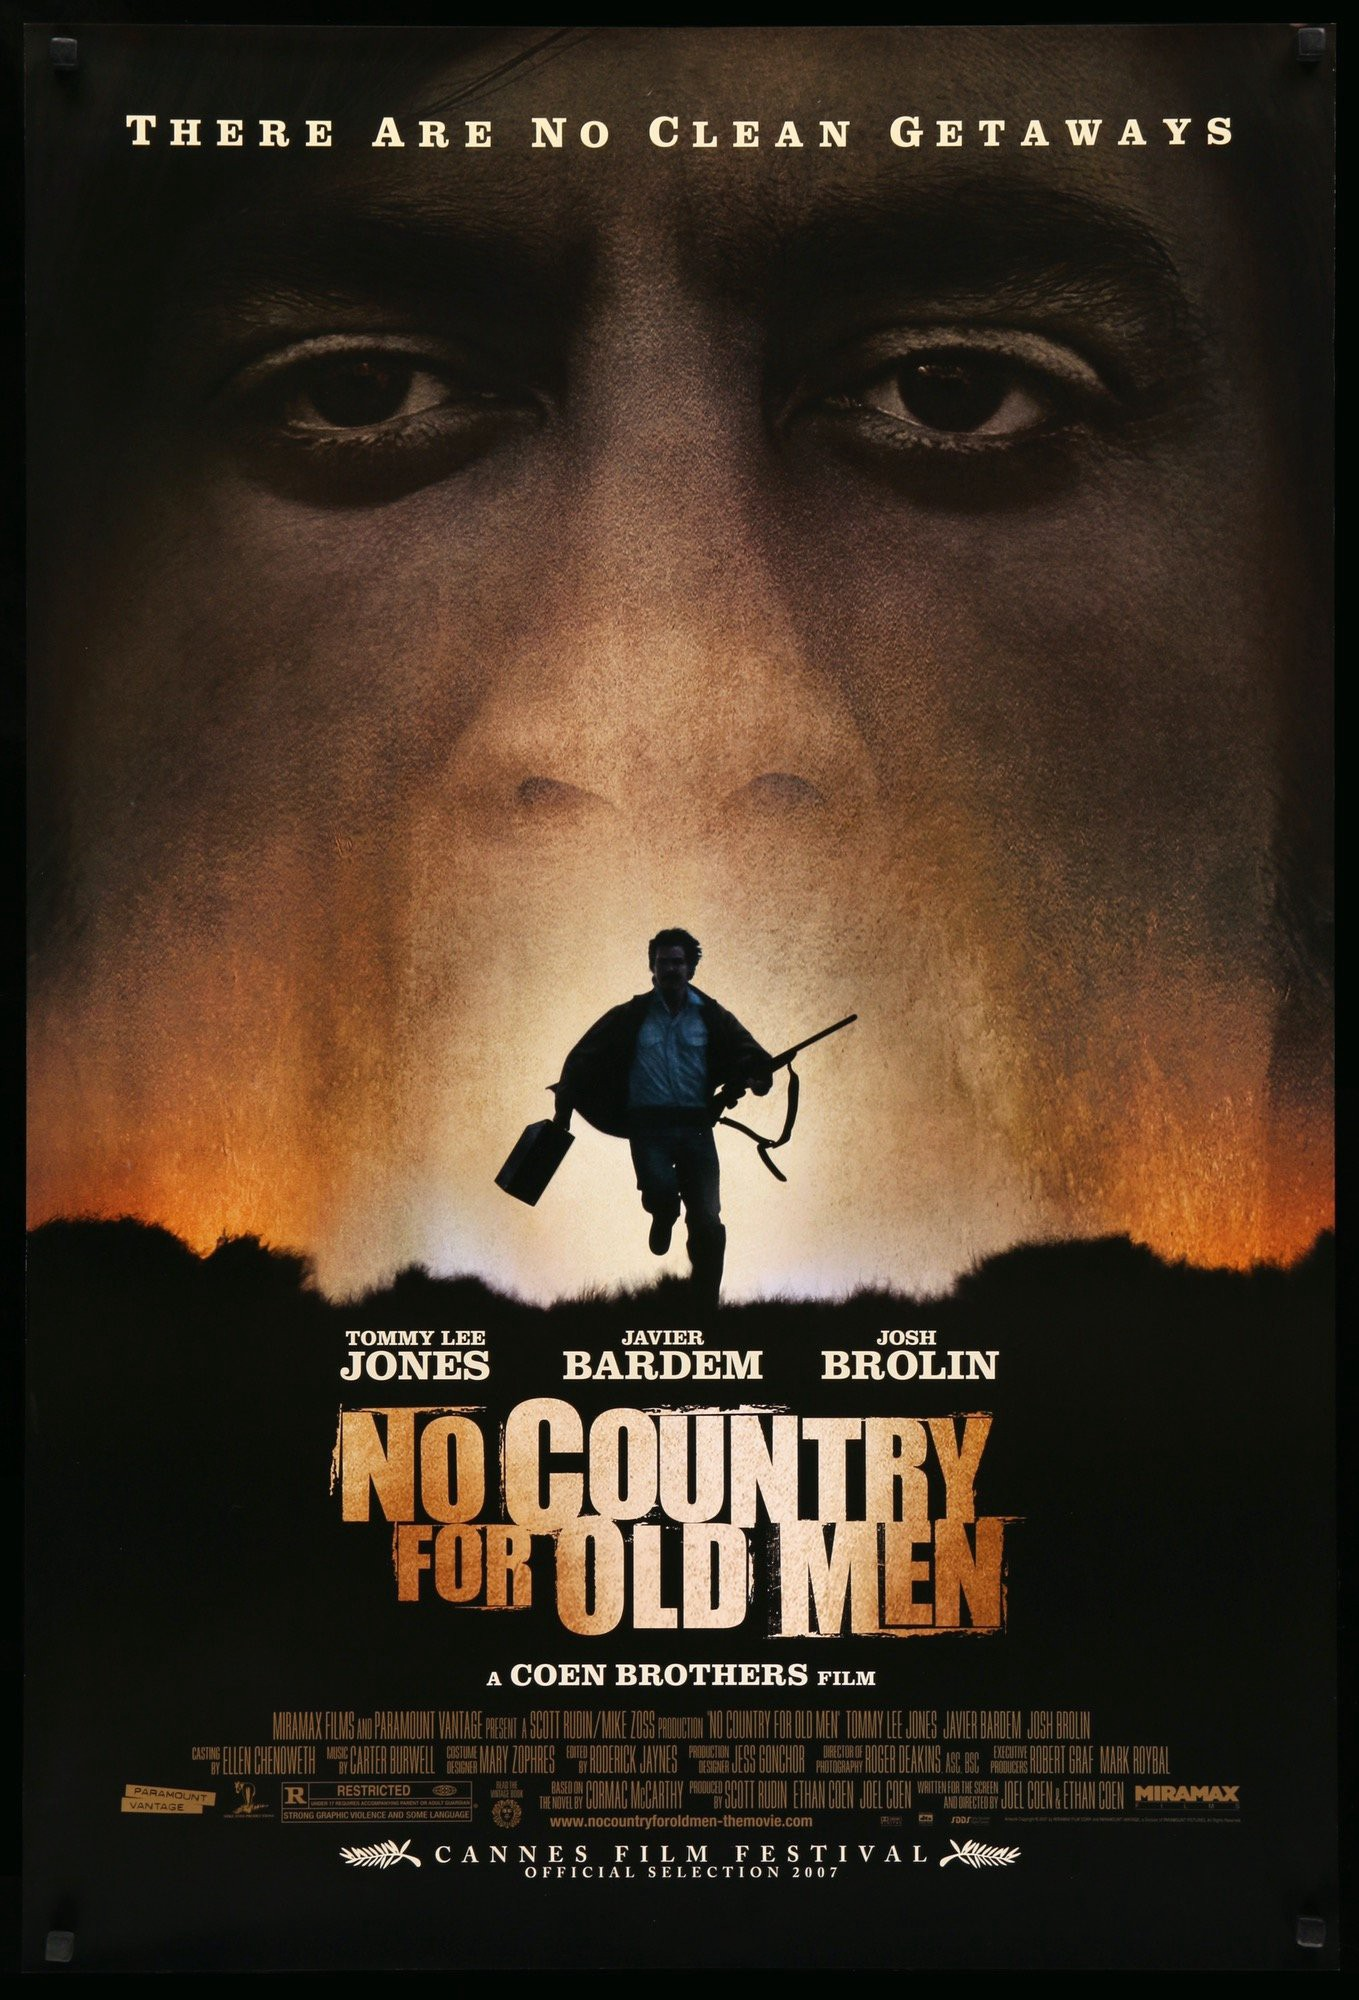 Poster for the film No Country For Old Men